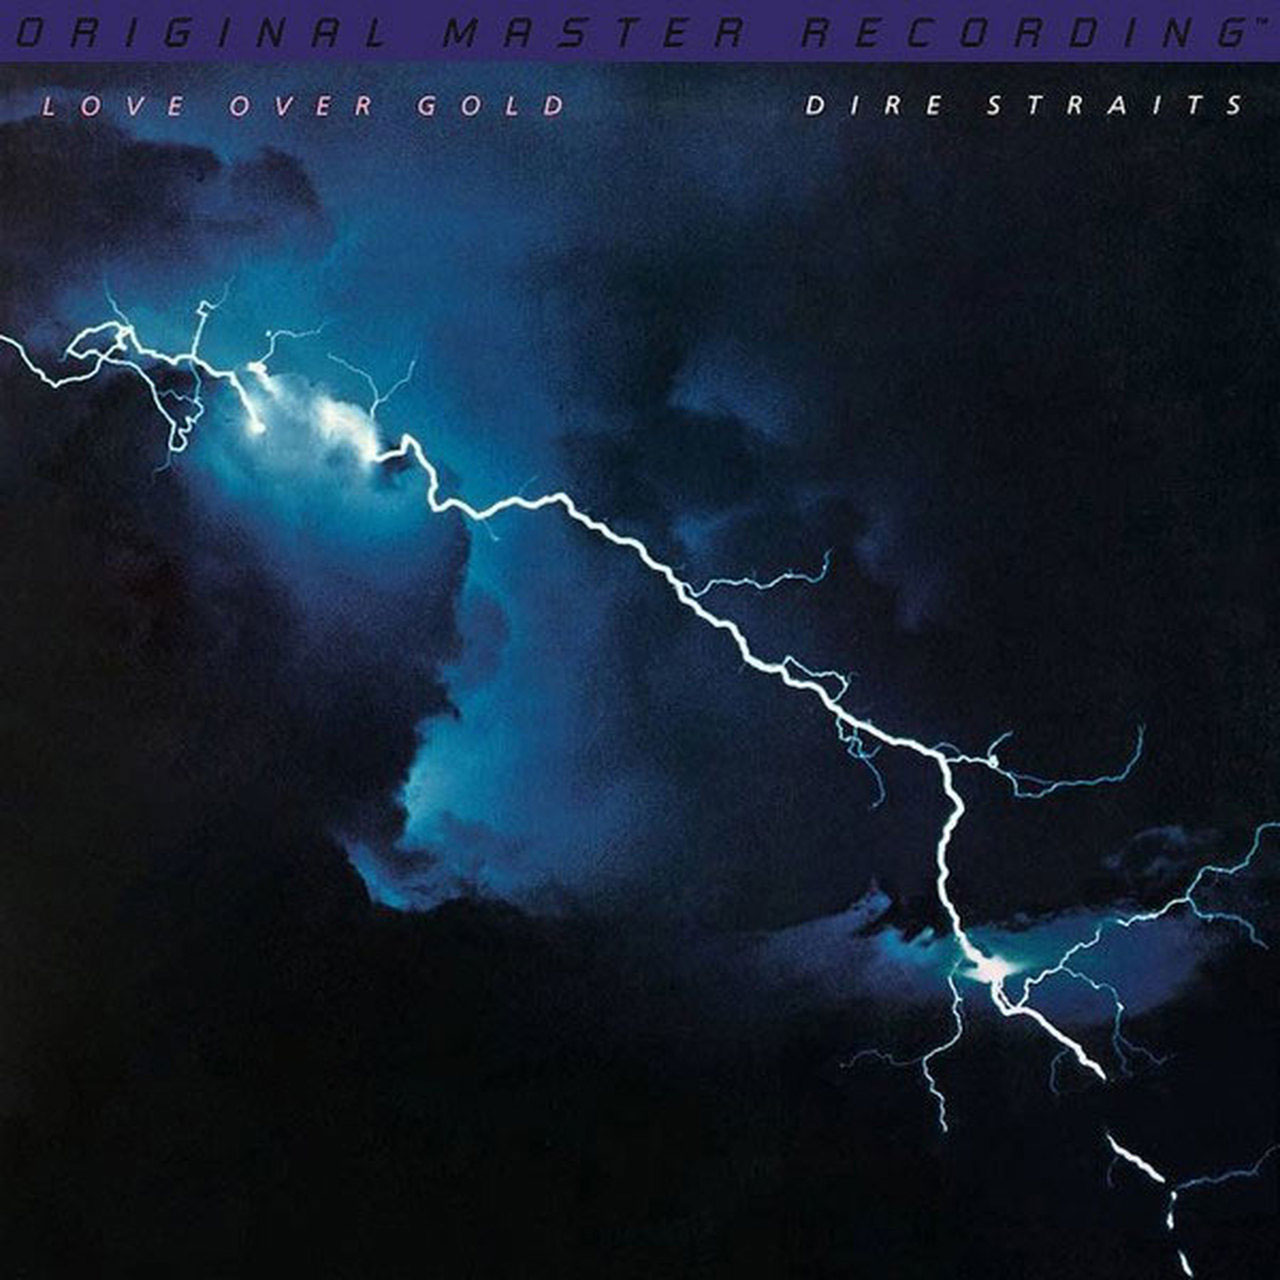 Dire Straits Love Over Gold Numbered Limited Edition Hybrid Stereo SACD